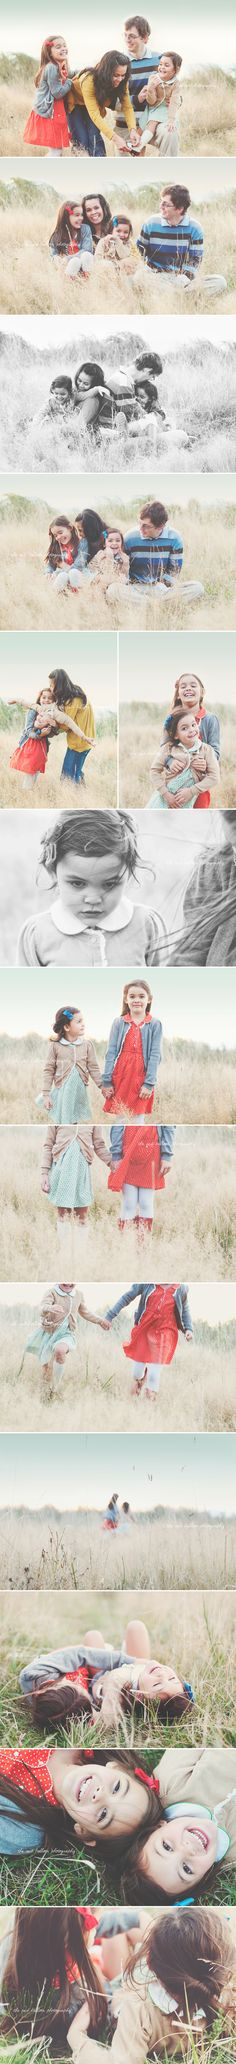 the nisets / seattle family and child photographer » The Red Balloon Photography